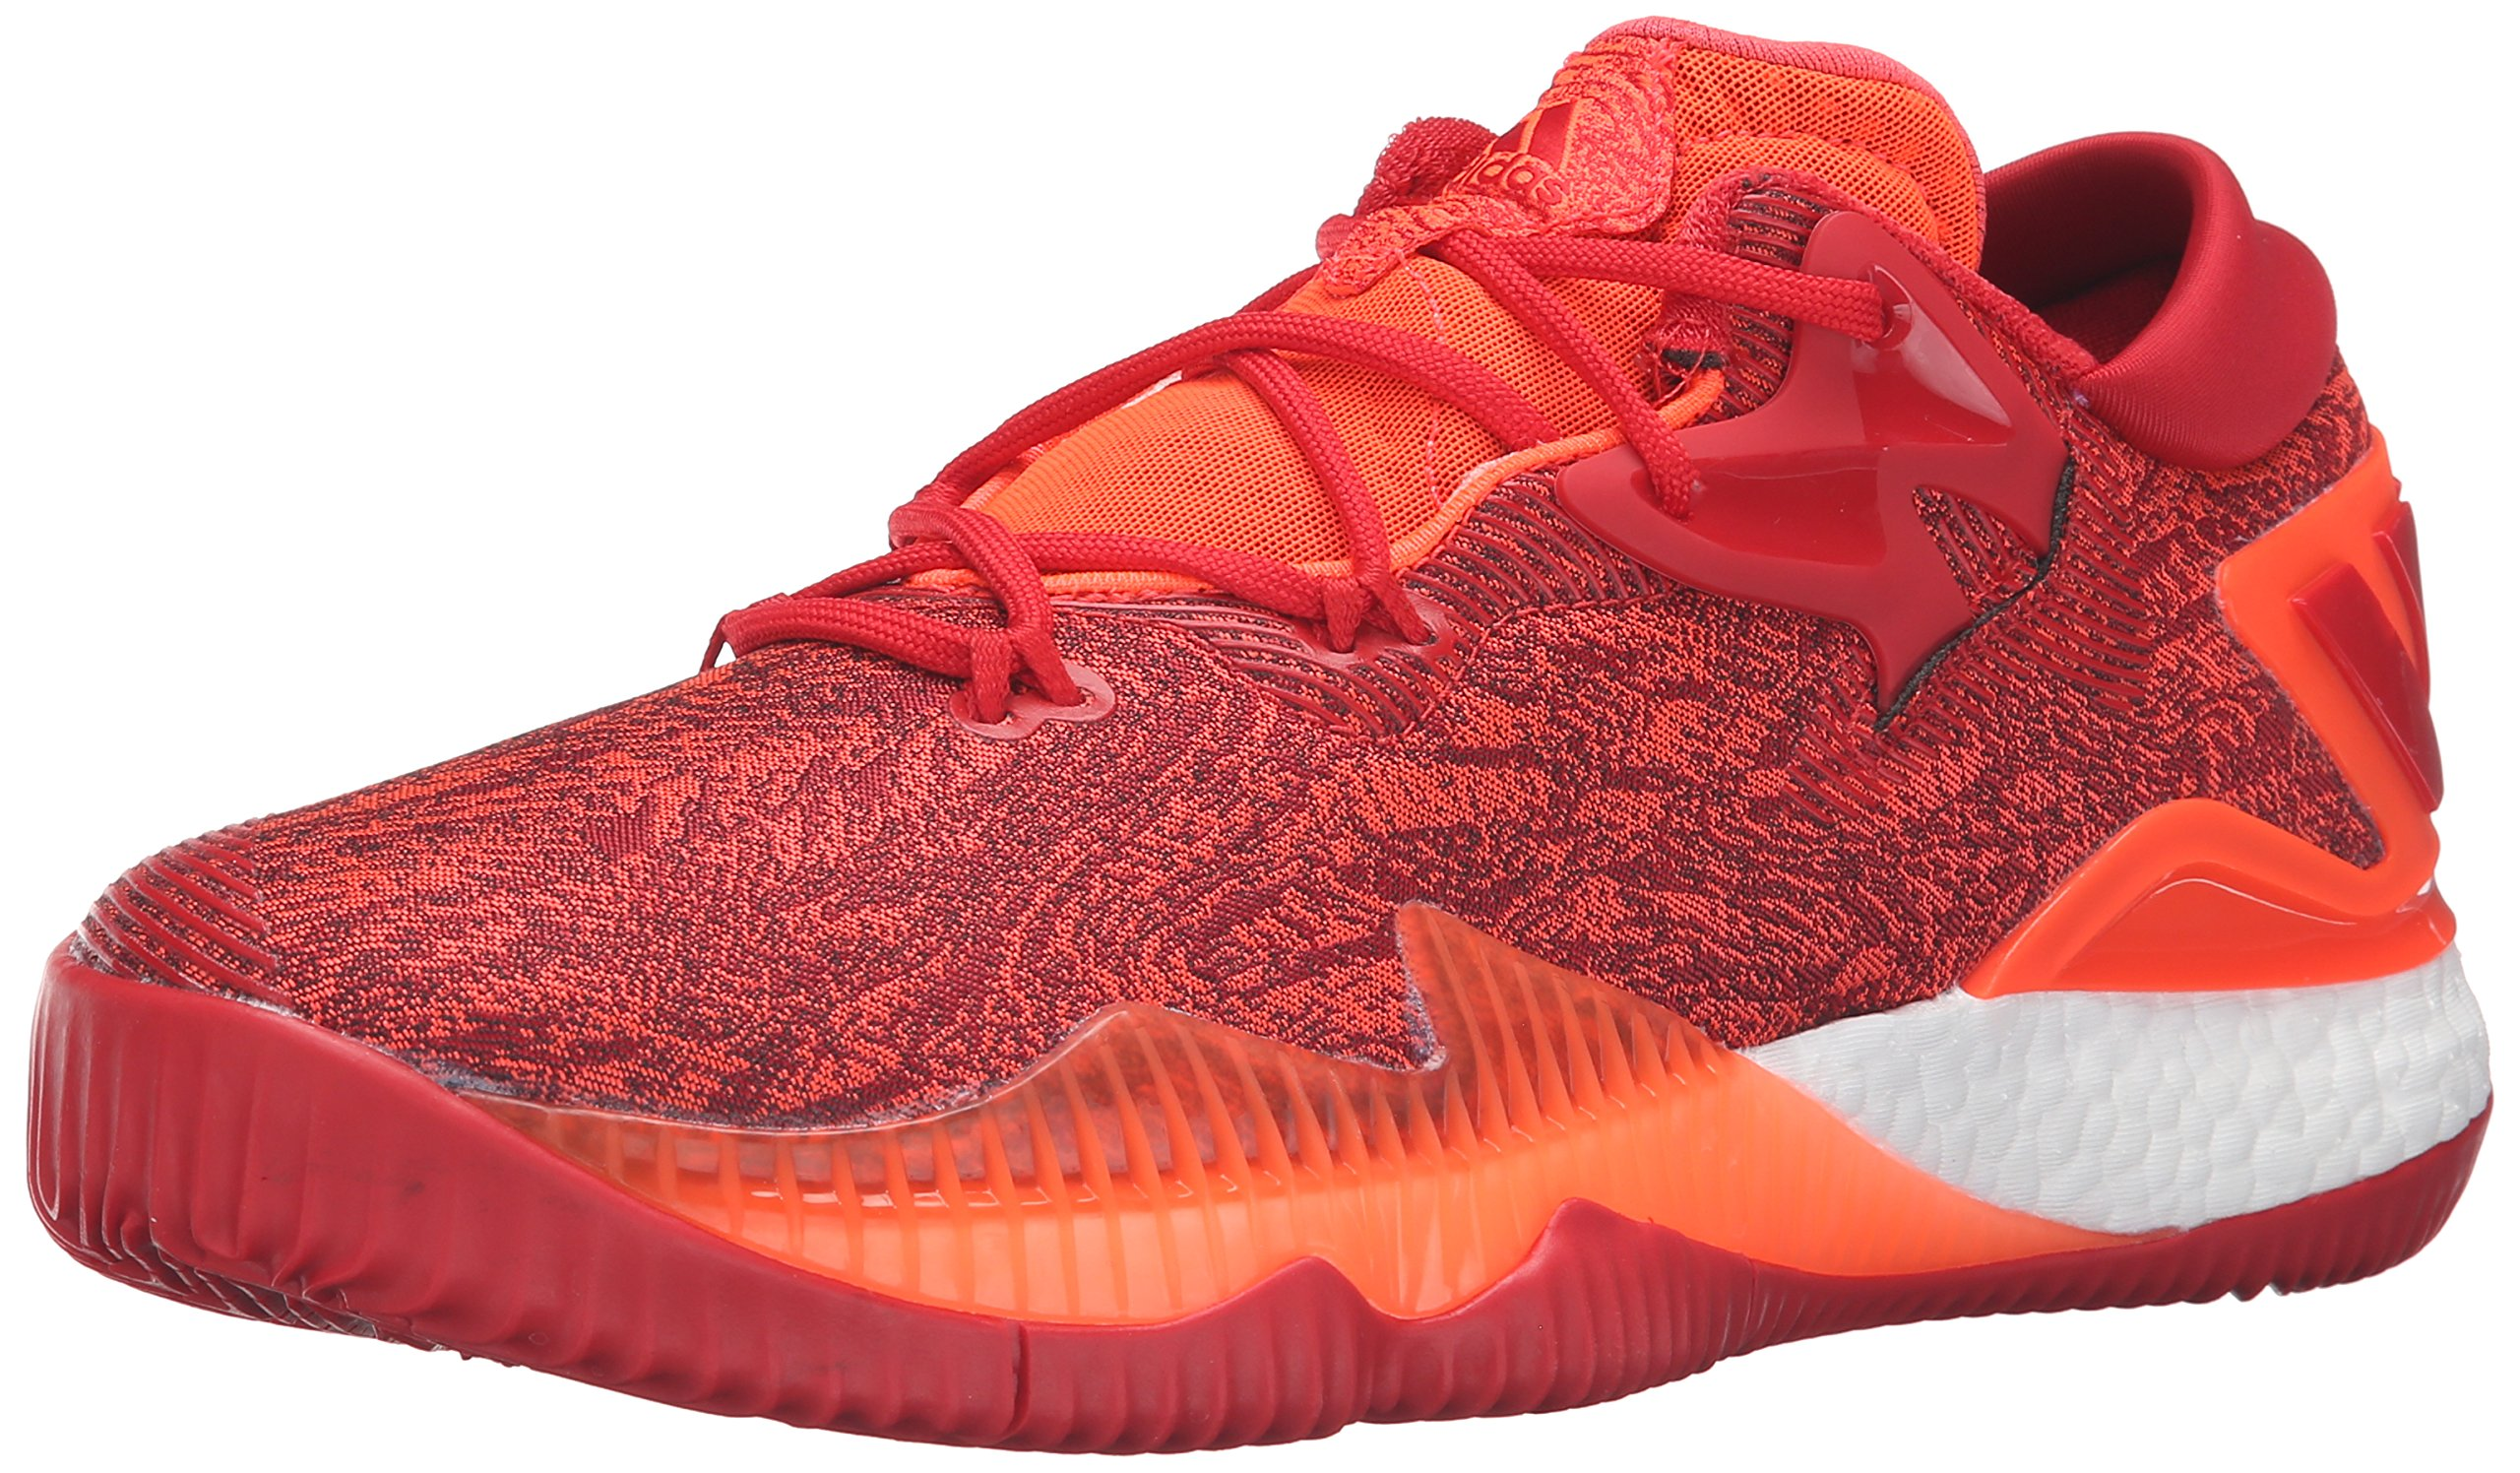 brand new 7eb74 1174a Galleon - Adidas Men s Crazylight Boost Low 2016 Basketball Shoe Solar Red Light  Scarlet Infrared 12 M US